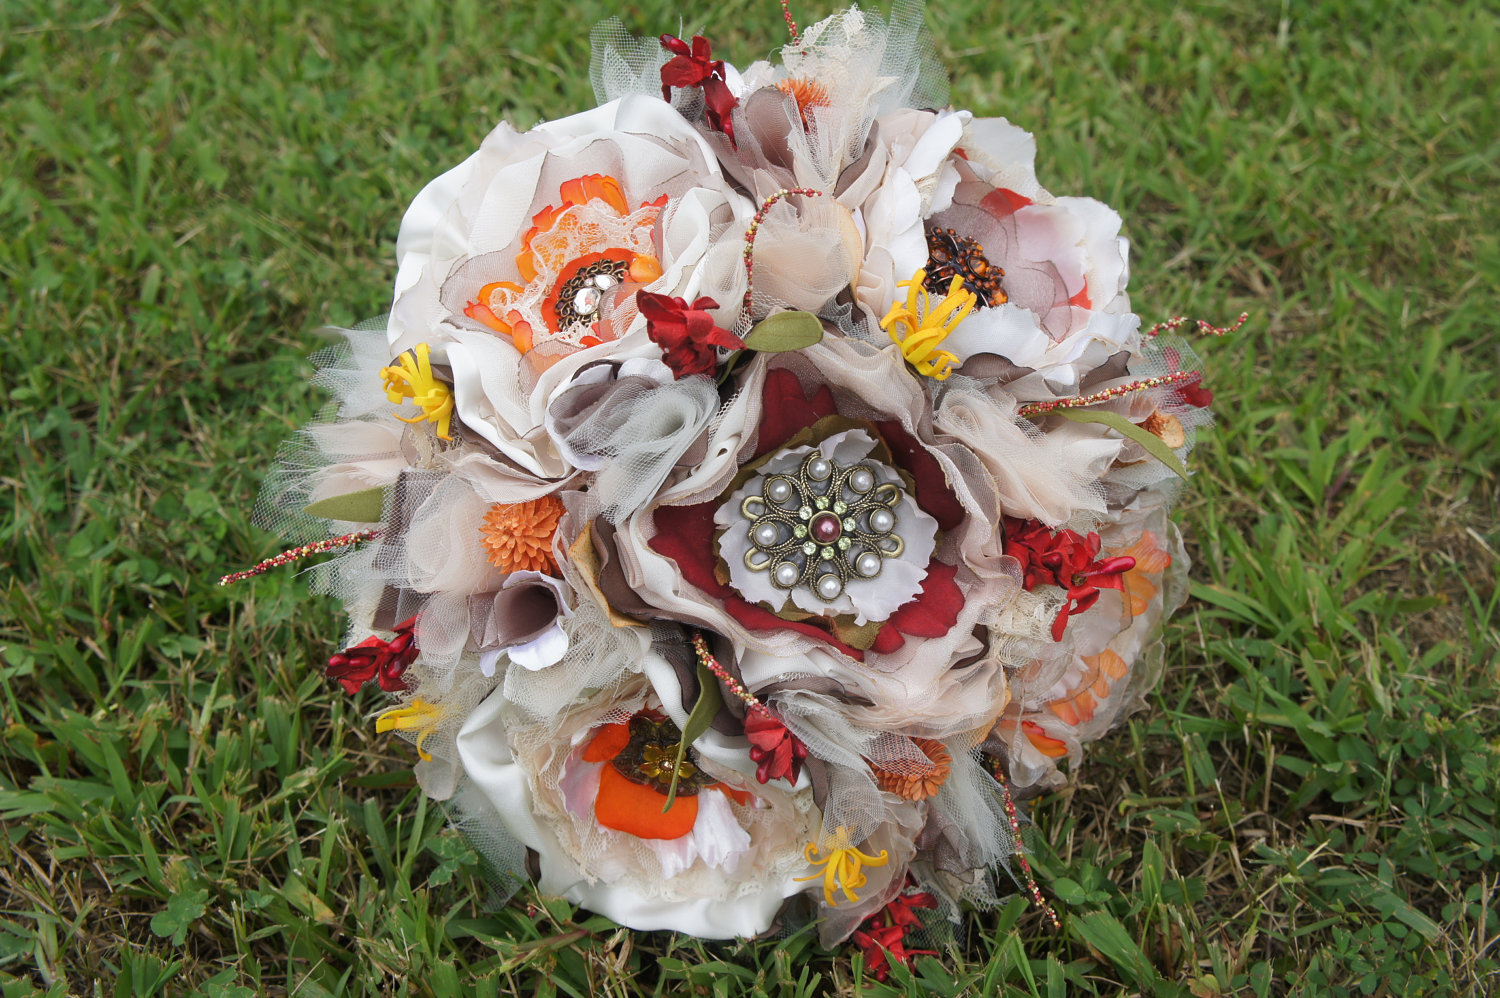 Fall-wedding-flowers-bouquets-and-centerpieces-vintage-eco-friendly.original